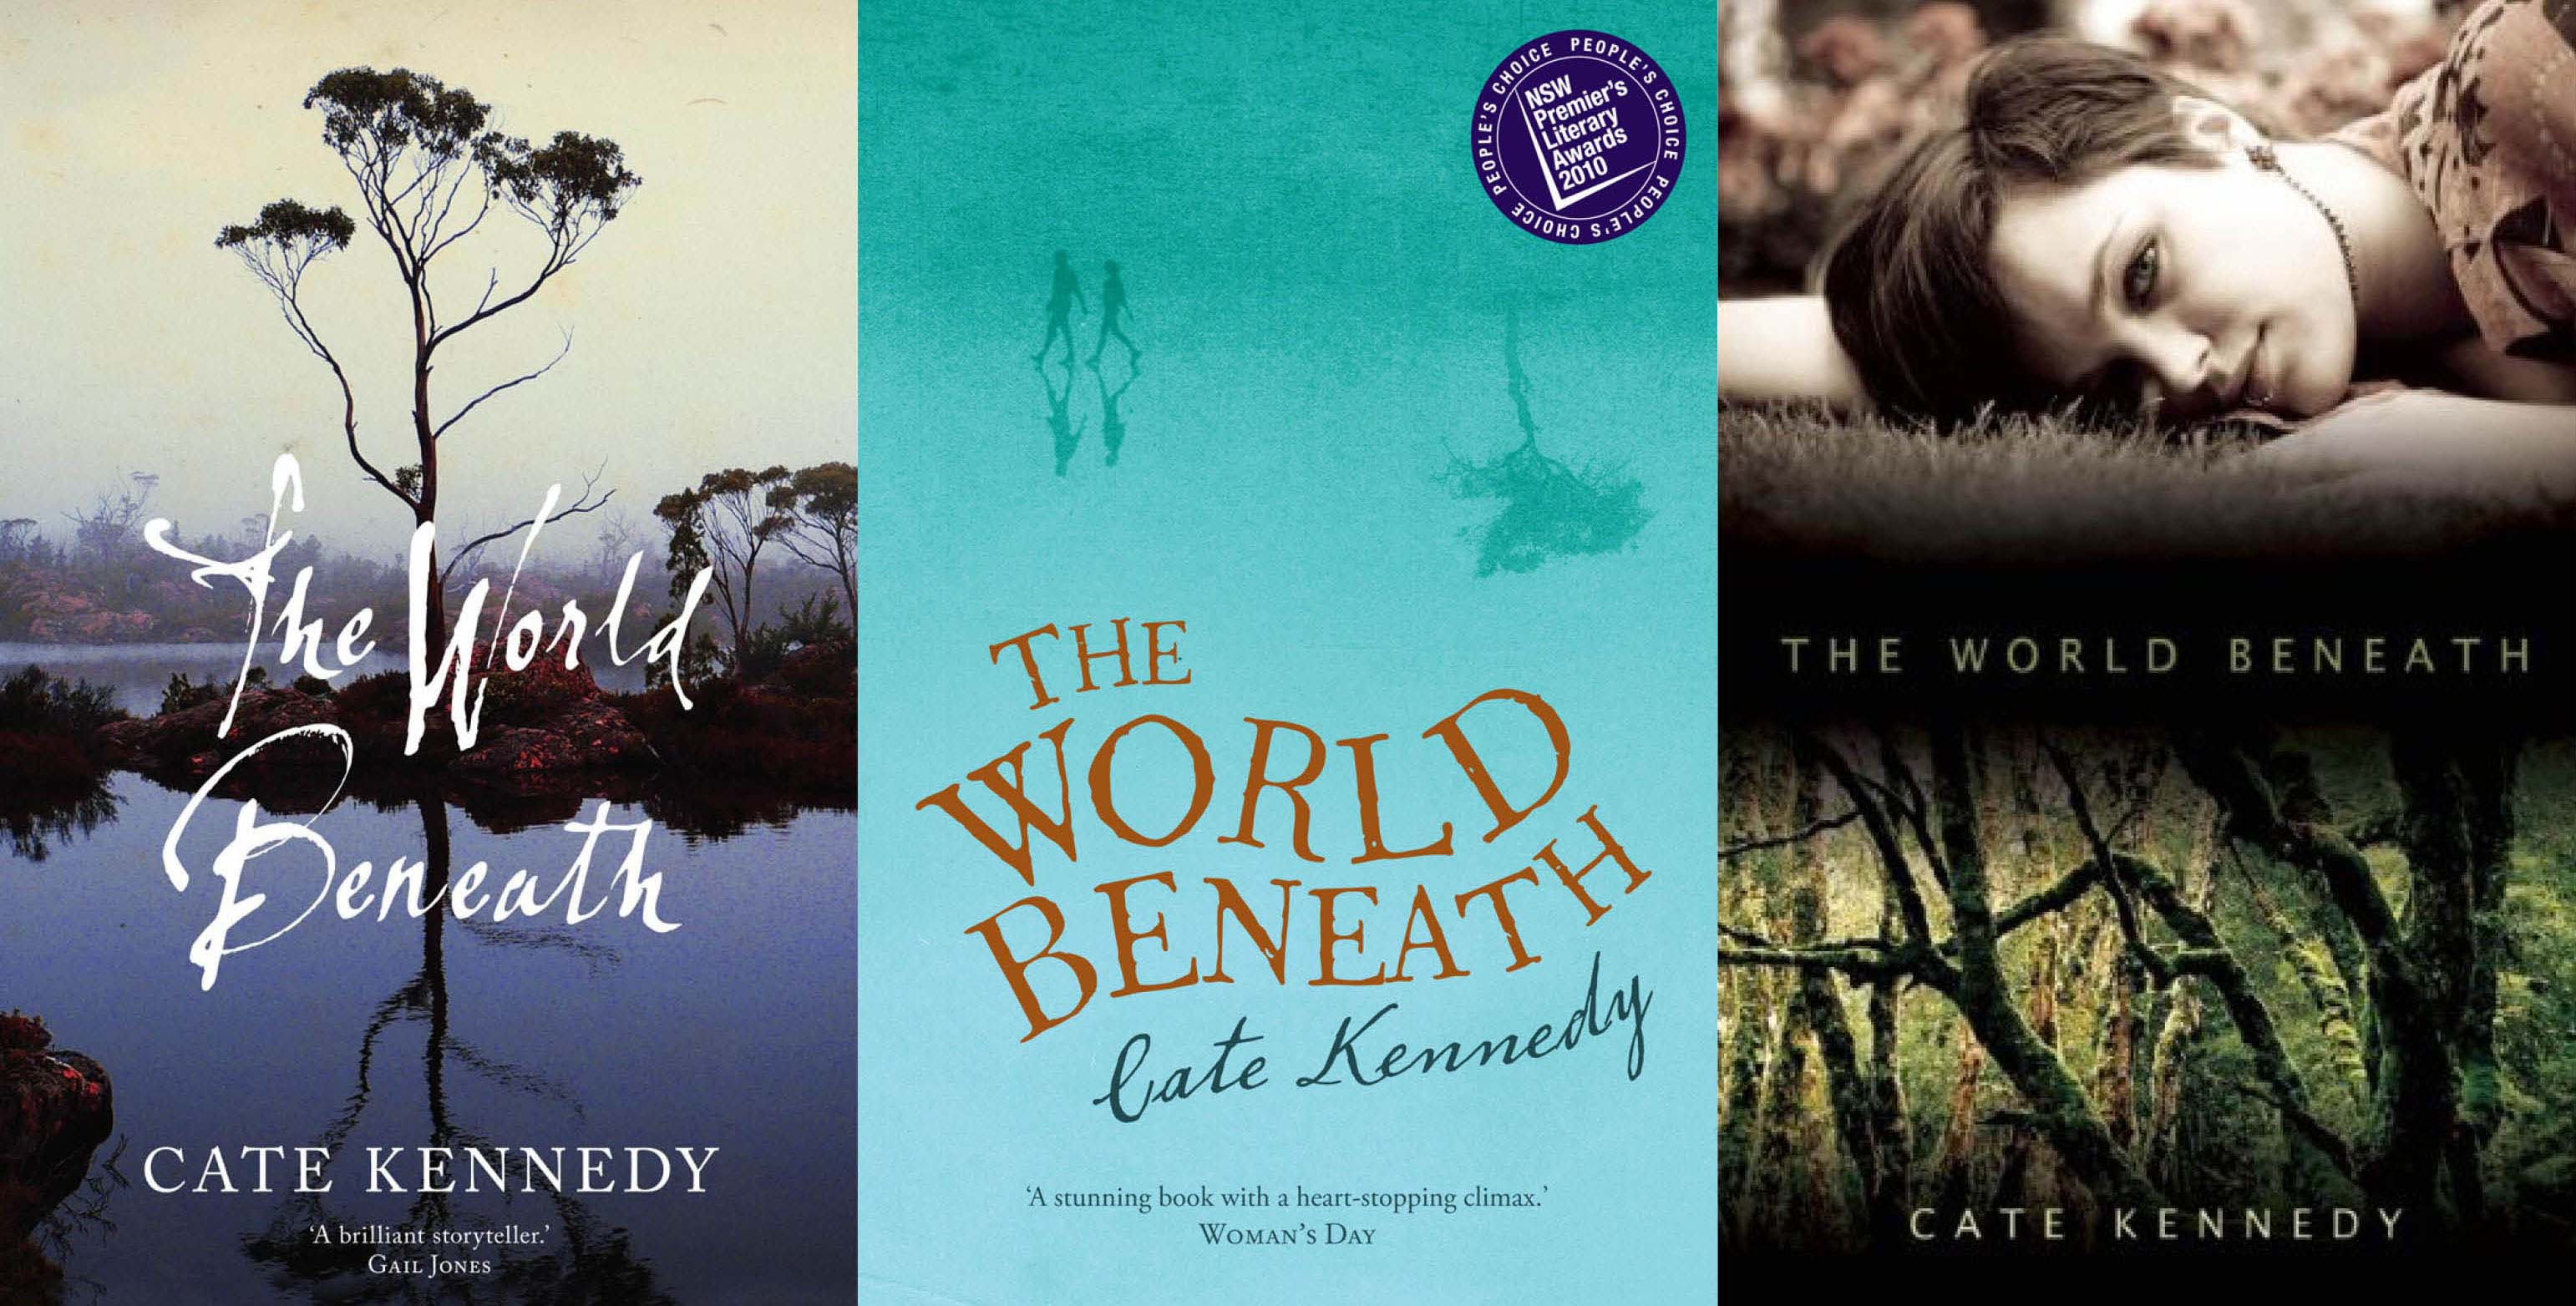 Covers for Cate Kennedy's 'The World Beneath' (from left to right): original Australian edition, UK edition, US edition.